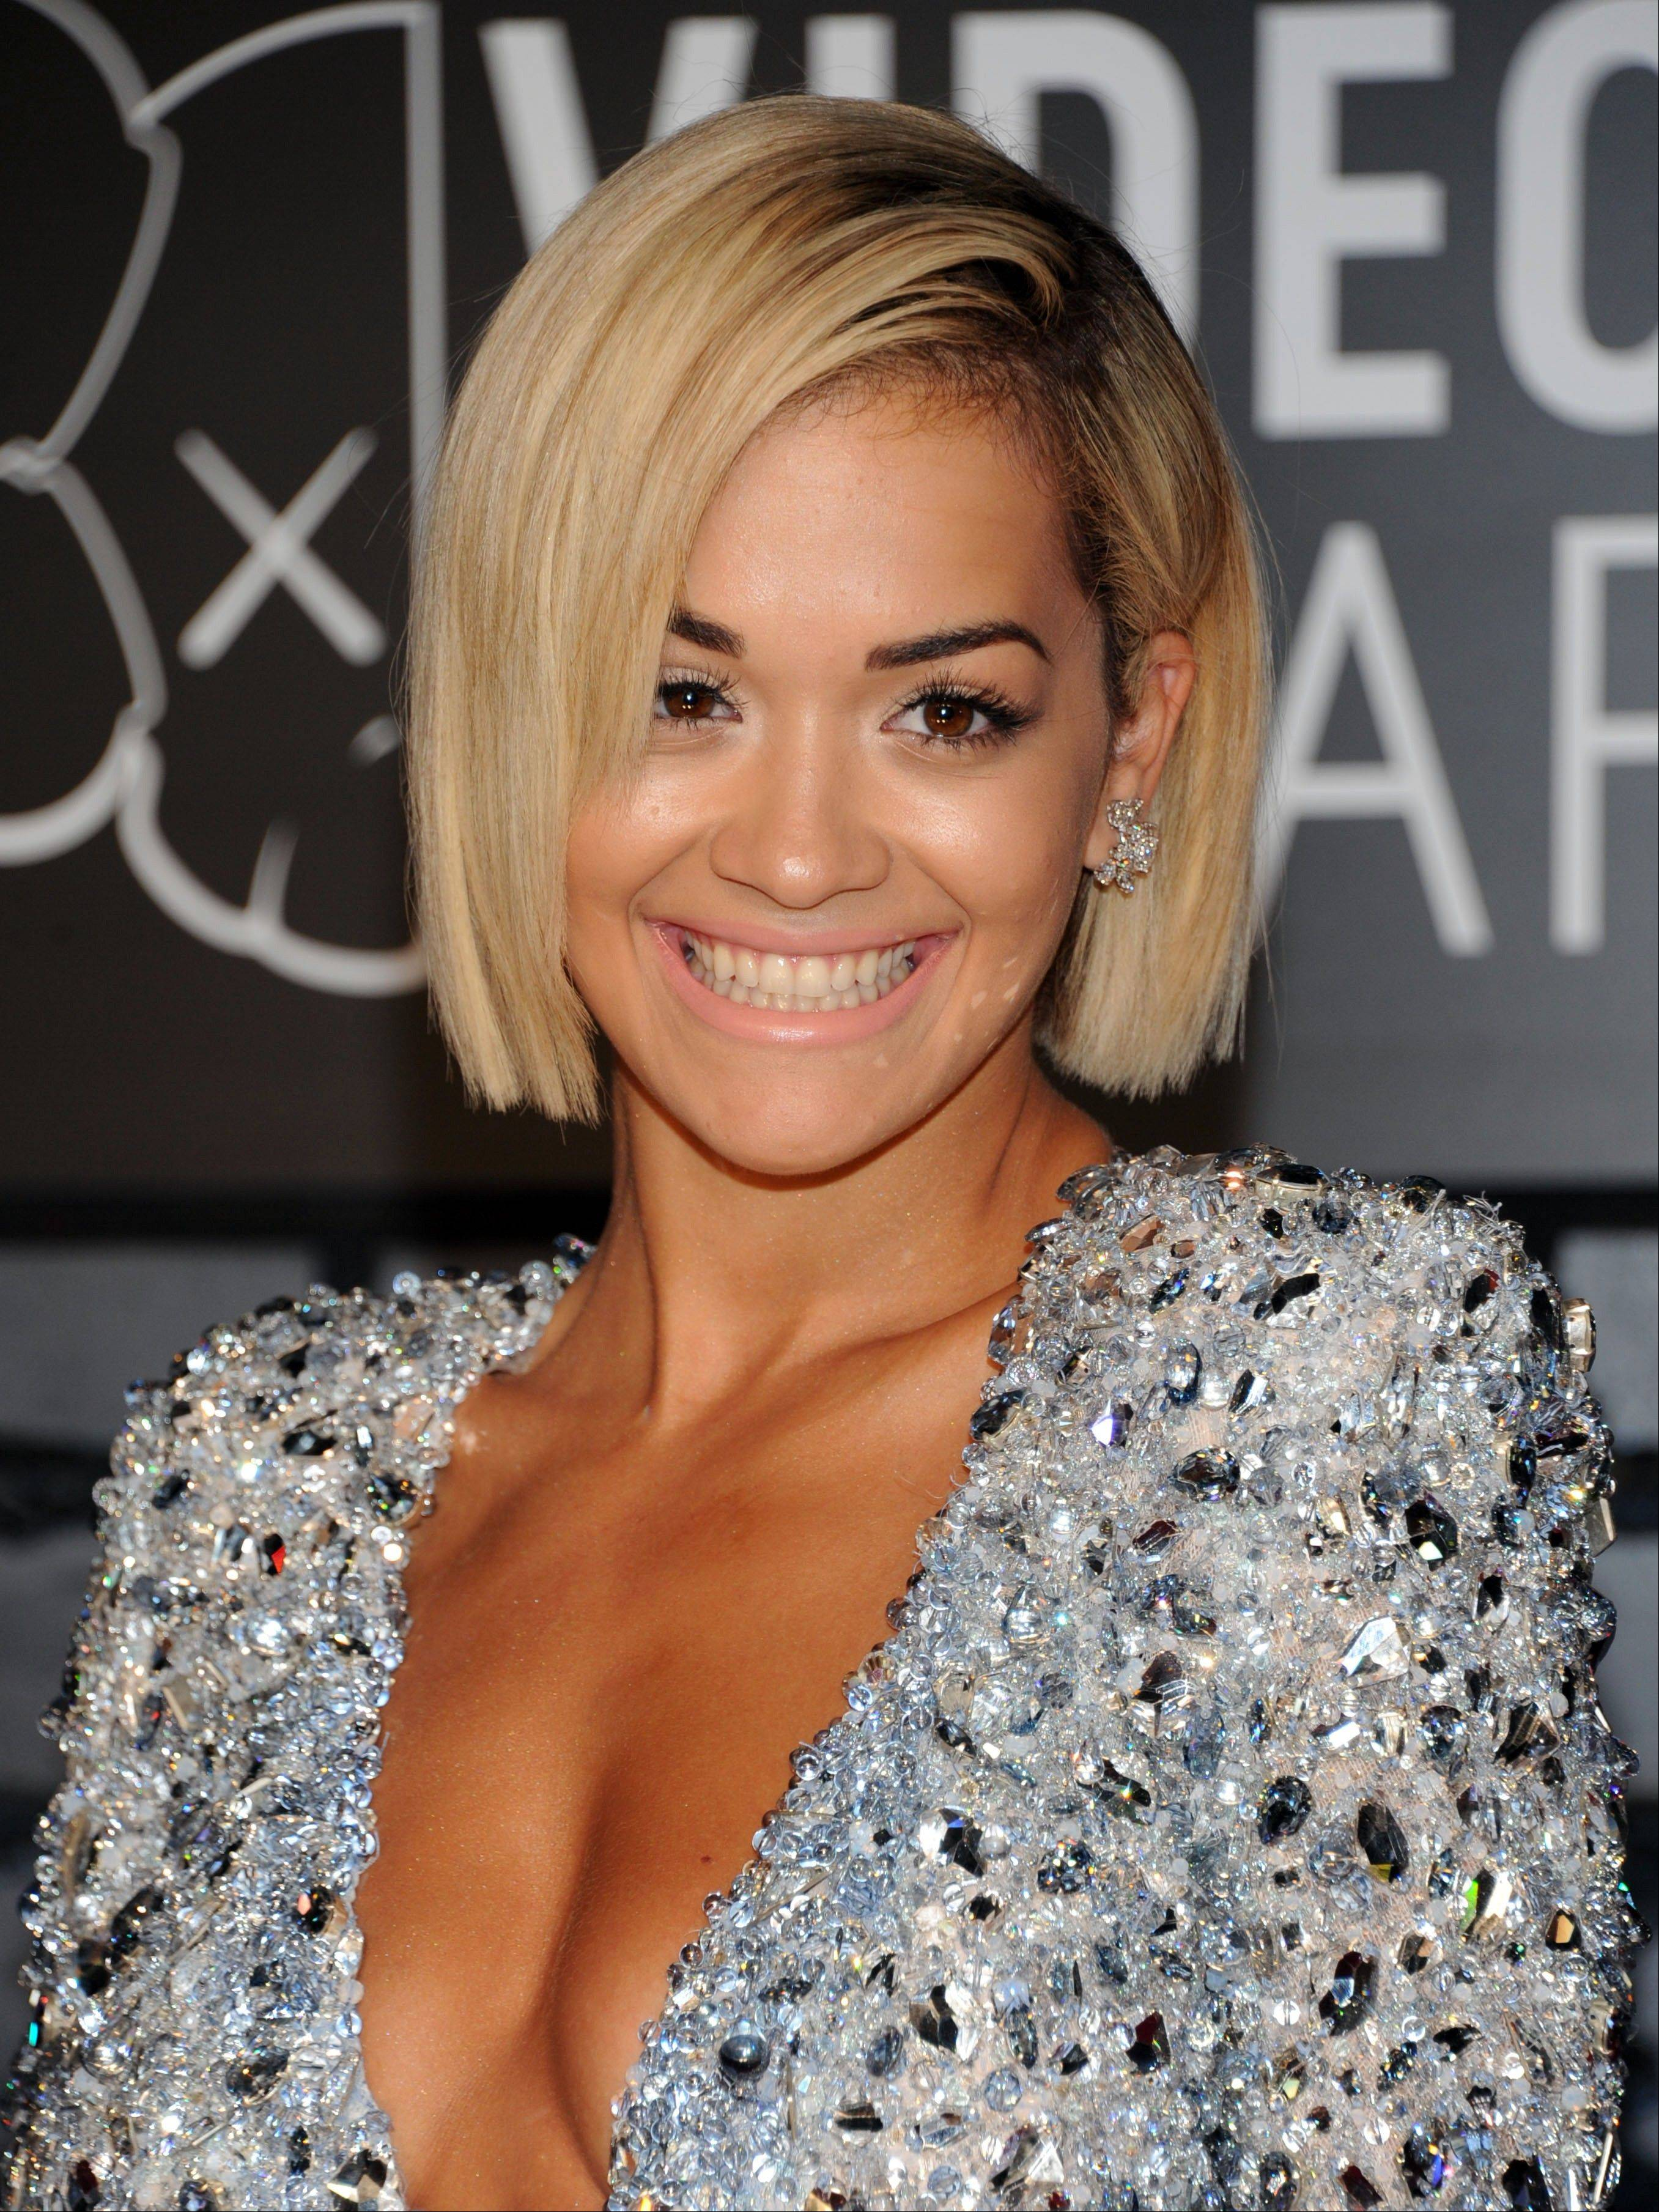 Rita Ora arrives at the MTV Video Music Awards on Sunday, Aug. 25, 2013, at the Barclays Center in the Brooklyn borough of New York.